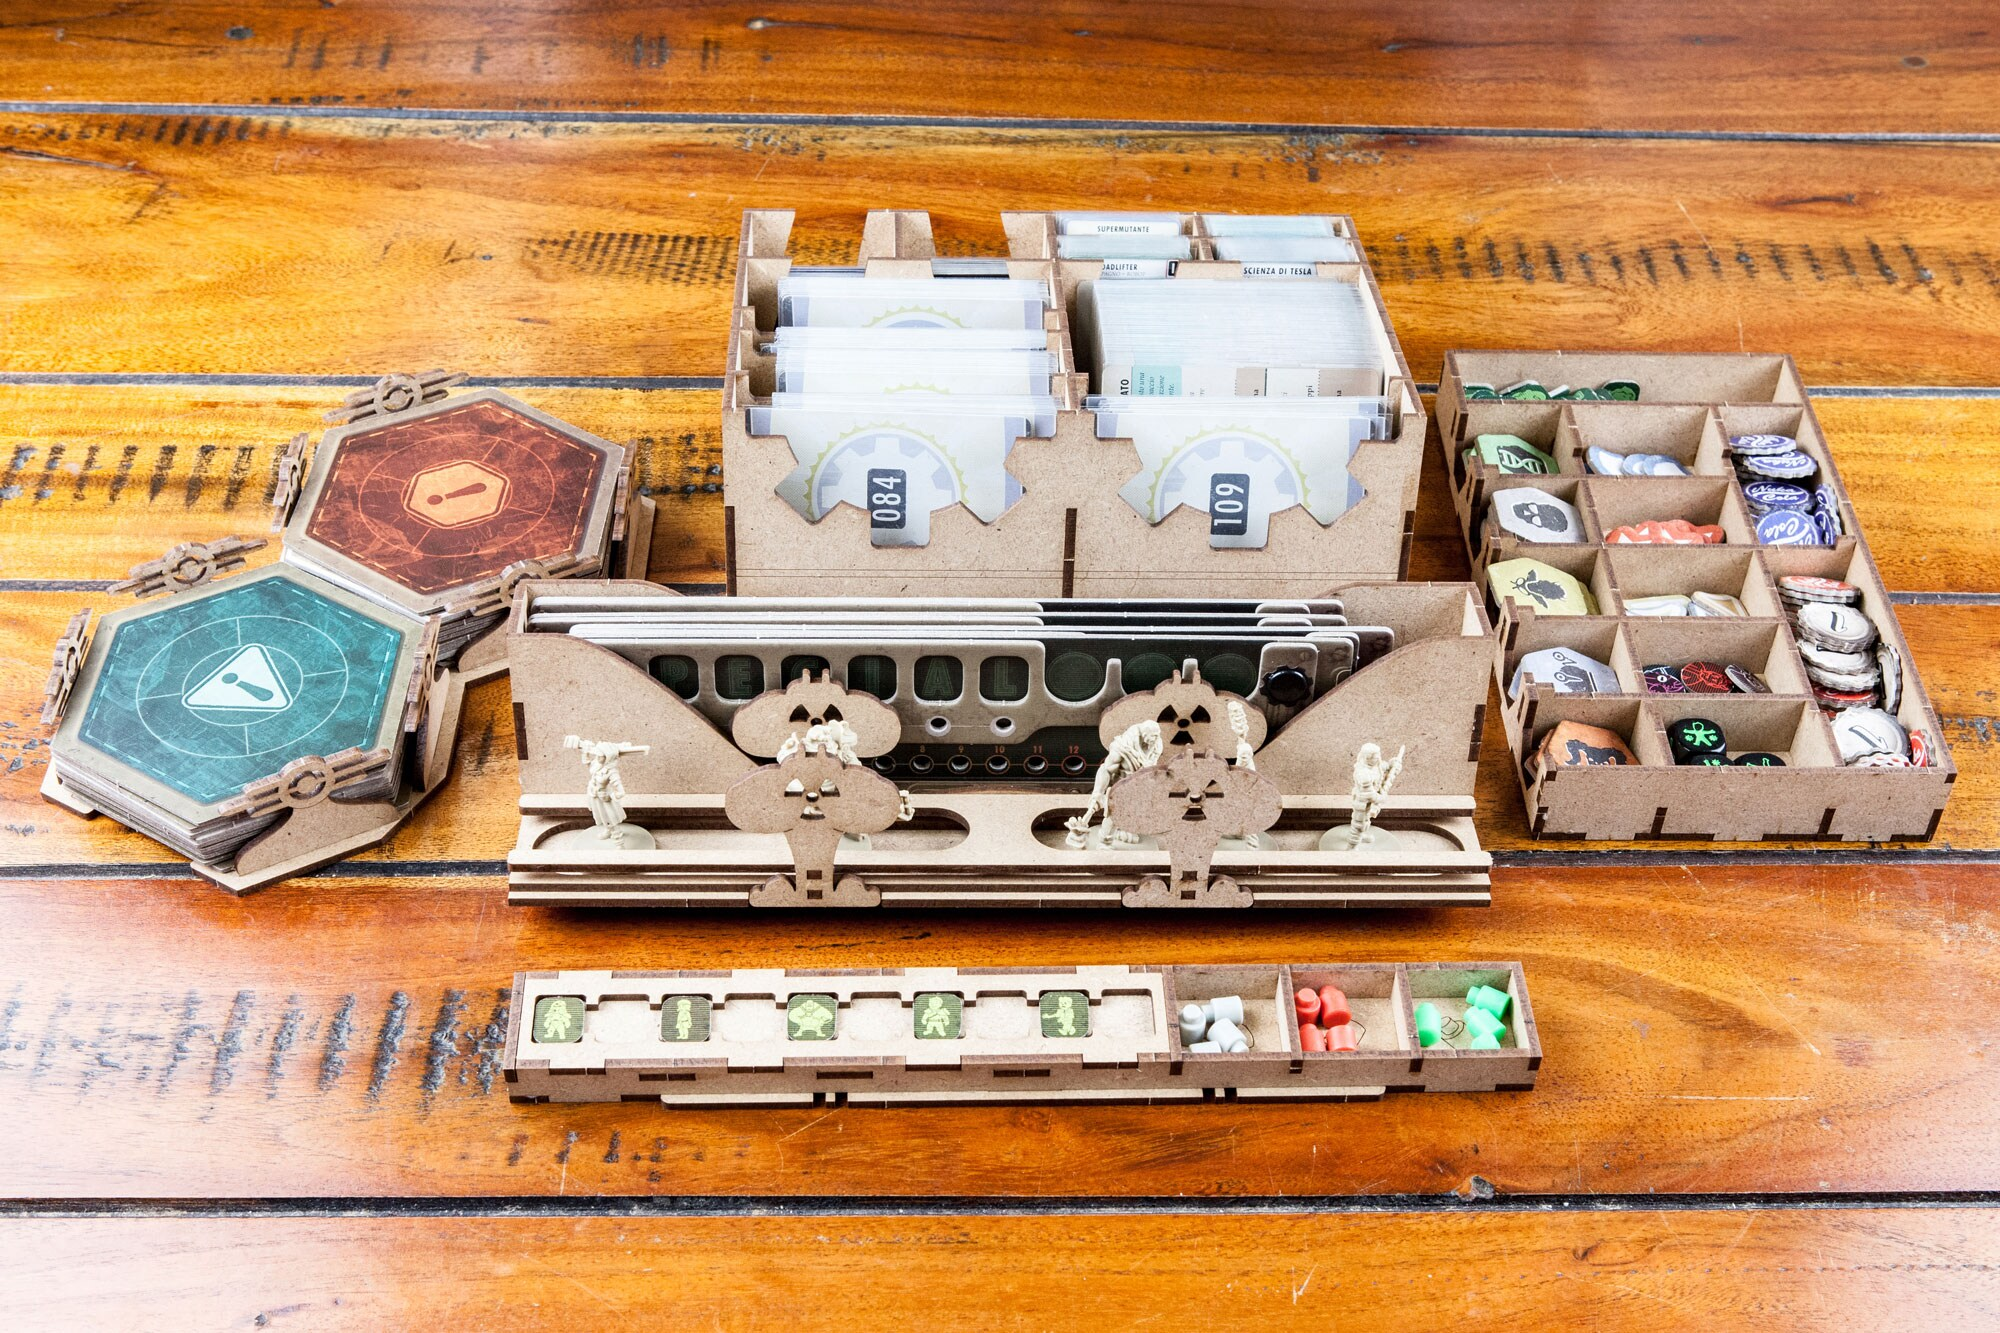 Fallout (base game or with New California expansion) Organizer Insert - 4